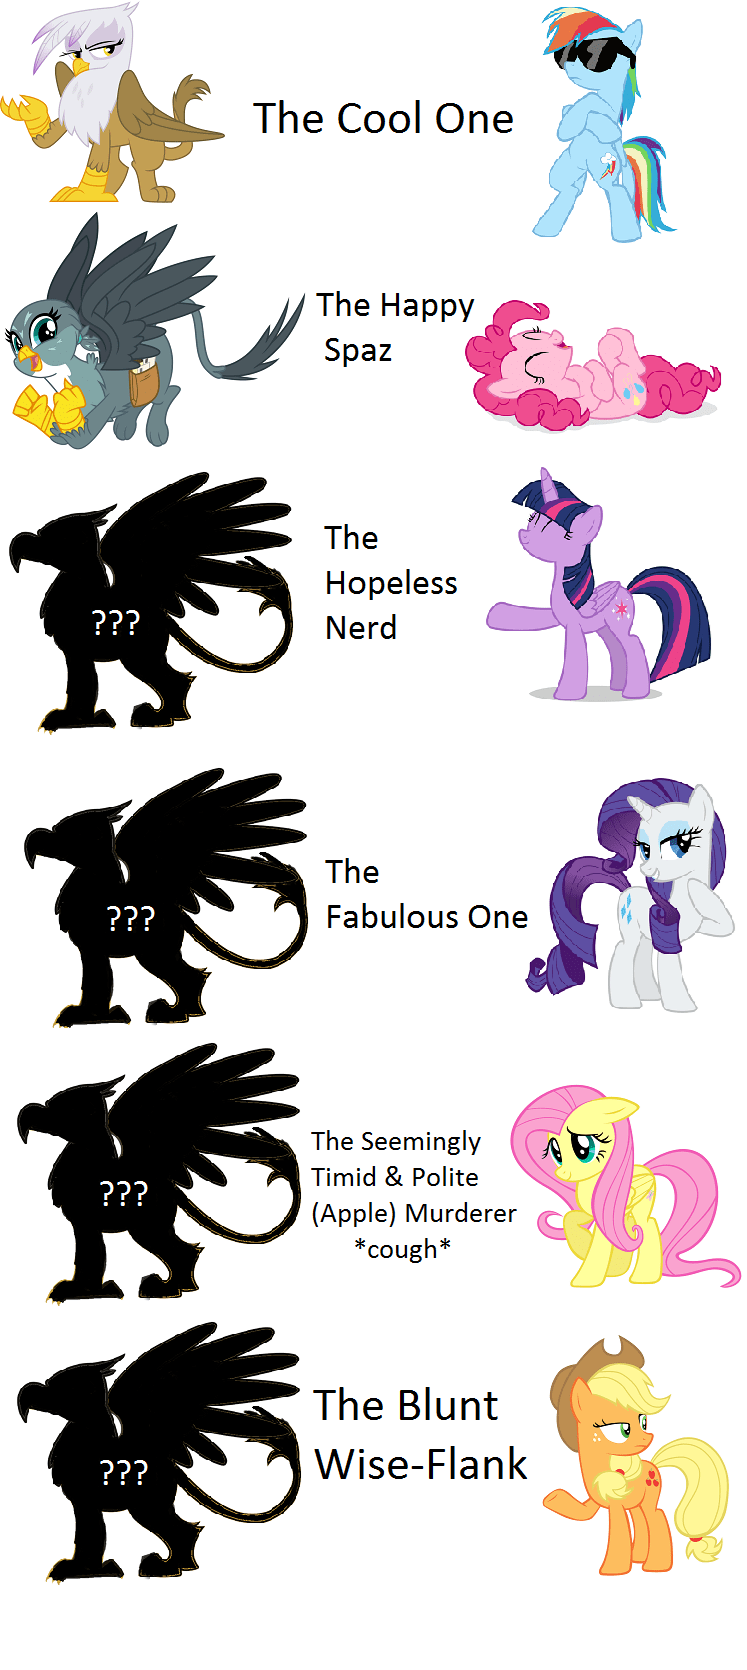 the fault in our cutie marks applejack gabby twilight sparkle griffon the brush off griffon pinkie pie gilda rarity fluttershy rainbow dash - 8976092416